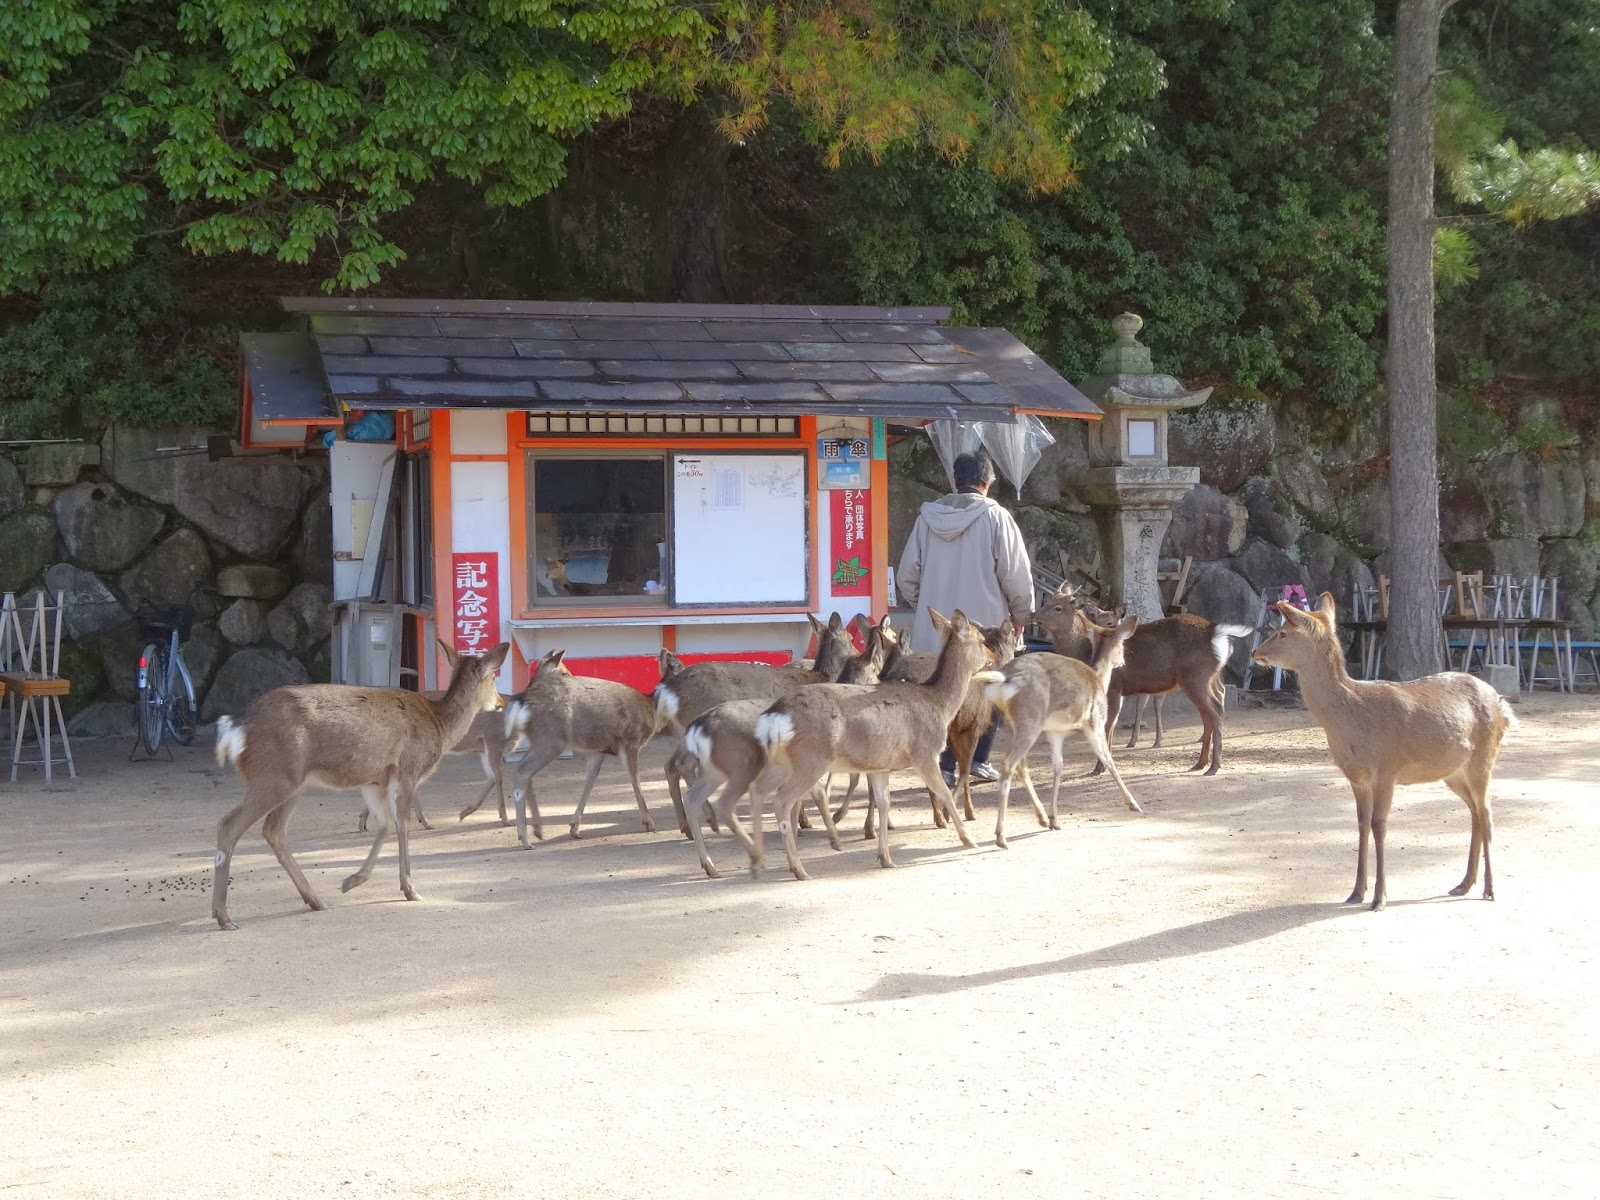 Man being followed by many deers in Miyajima Island, Hiroshima